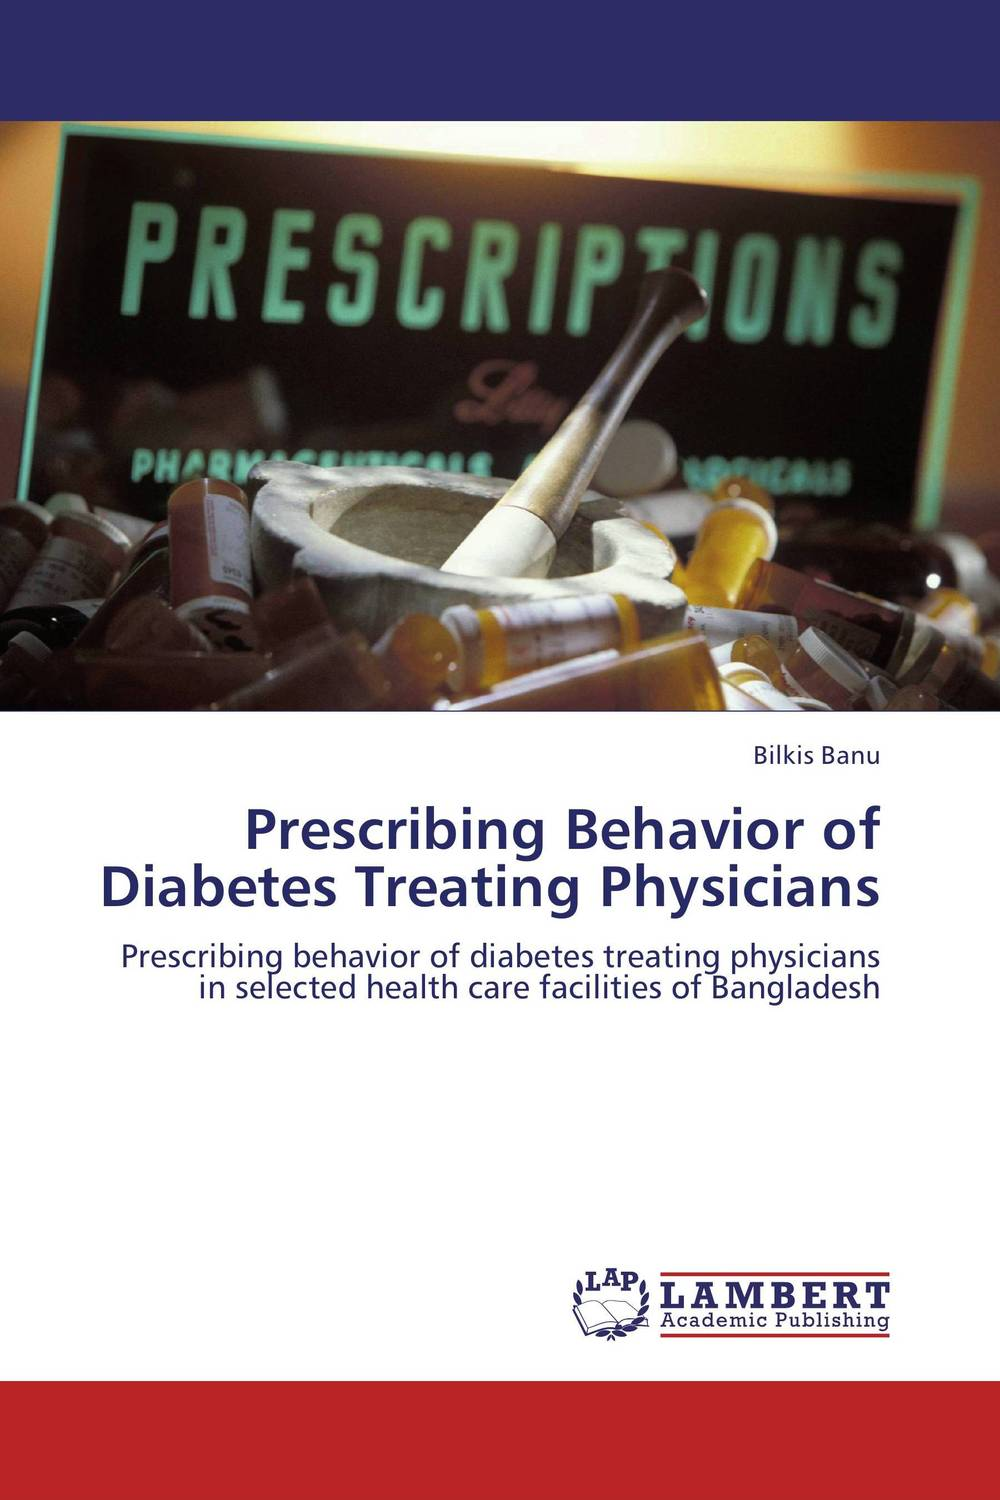 цены Prescribing Behavior of Diabetes Treating Physicians